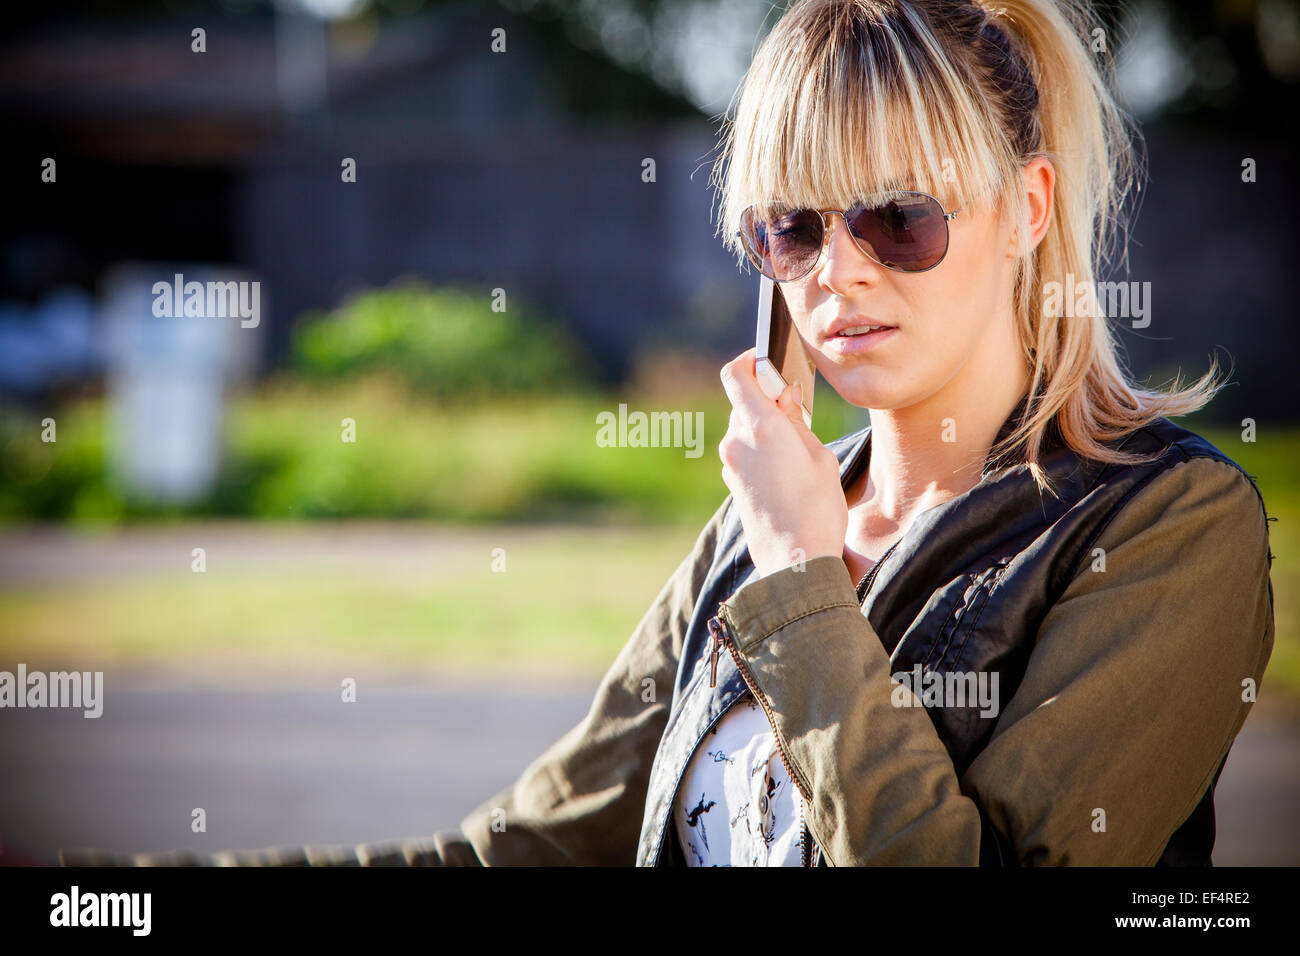 Young woman with sunglasses using mobile phone - Stock Image